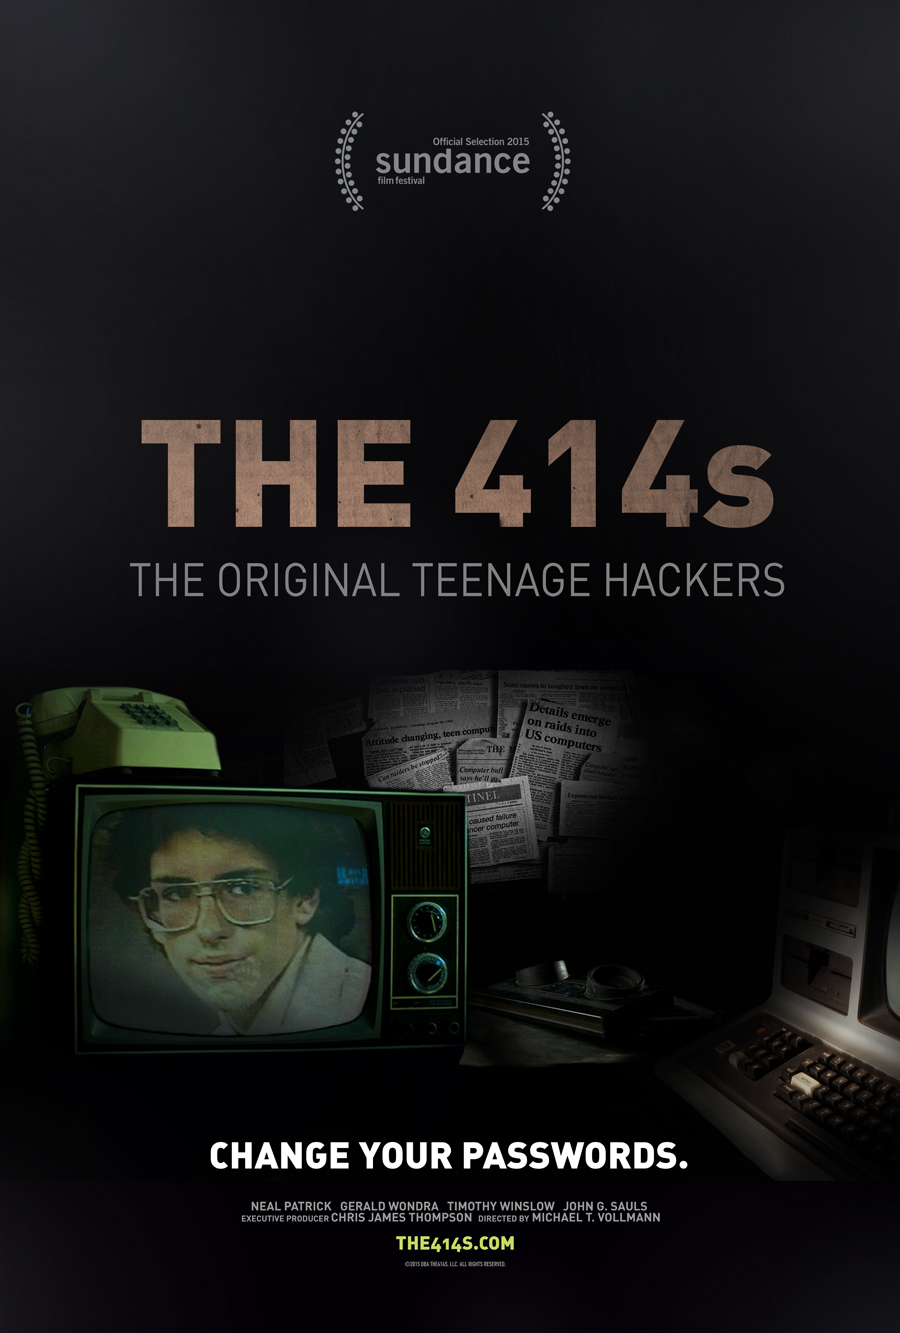 CNN Films to Launch Short Films Strand with THE 414s: THE ORIGINAL TEENAGE HACKERS